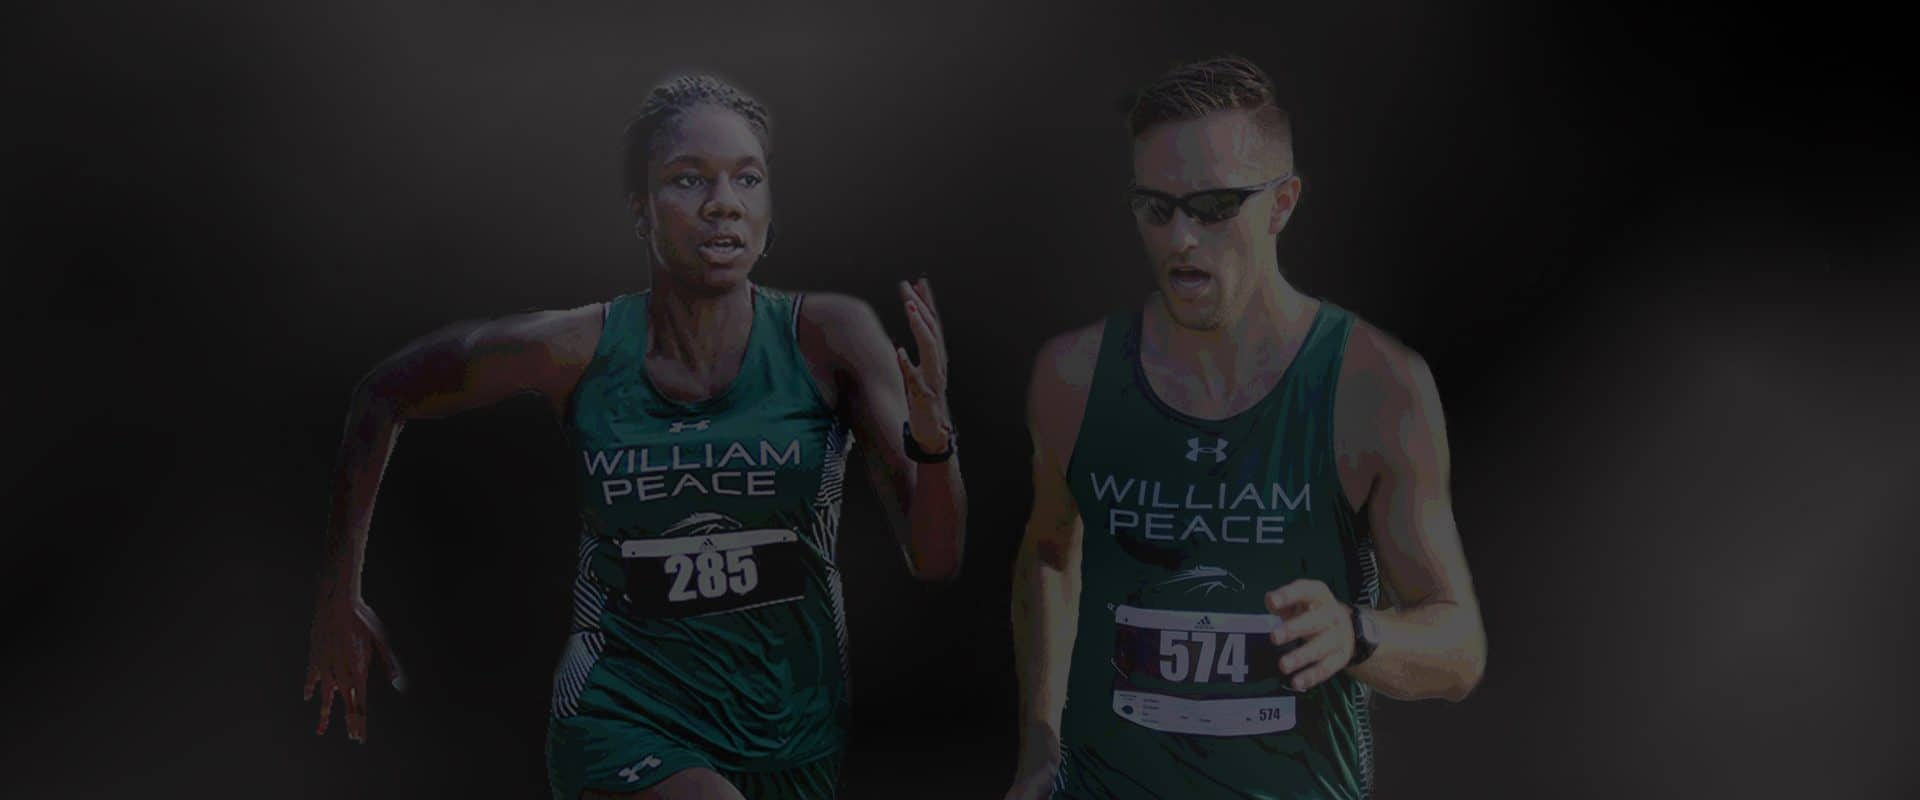 WPU has launched Track & Field as a sport